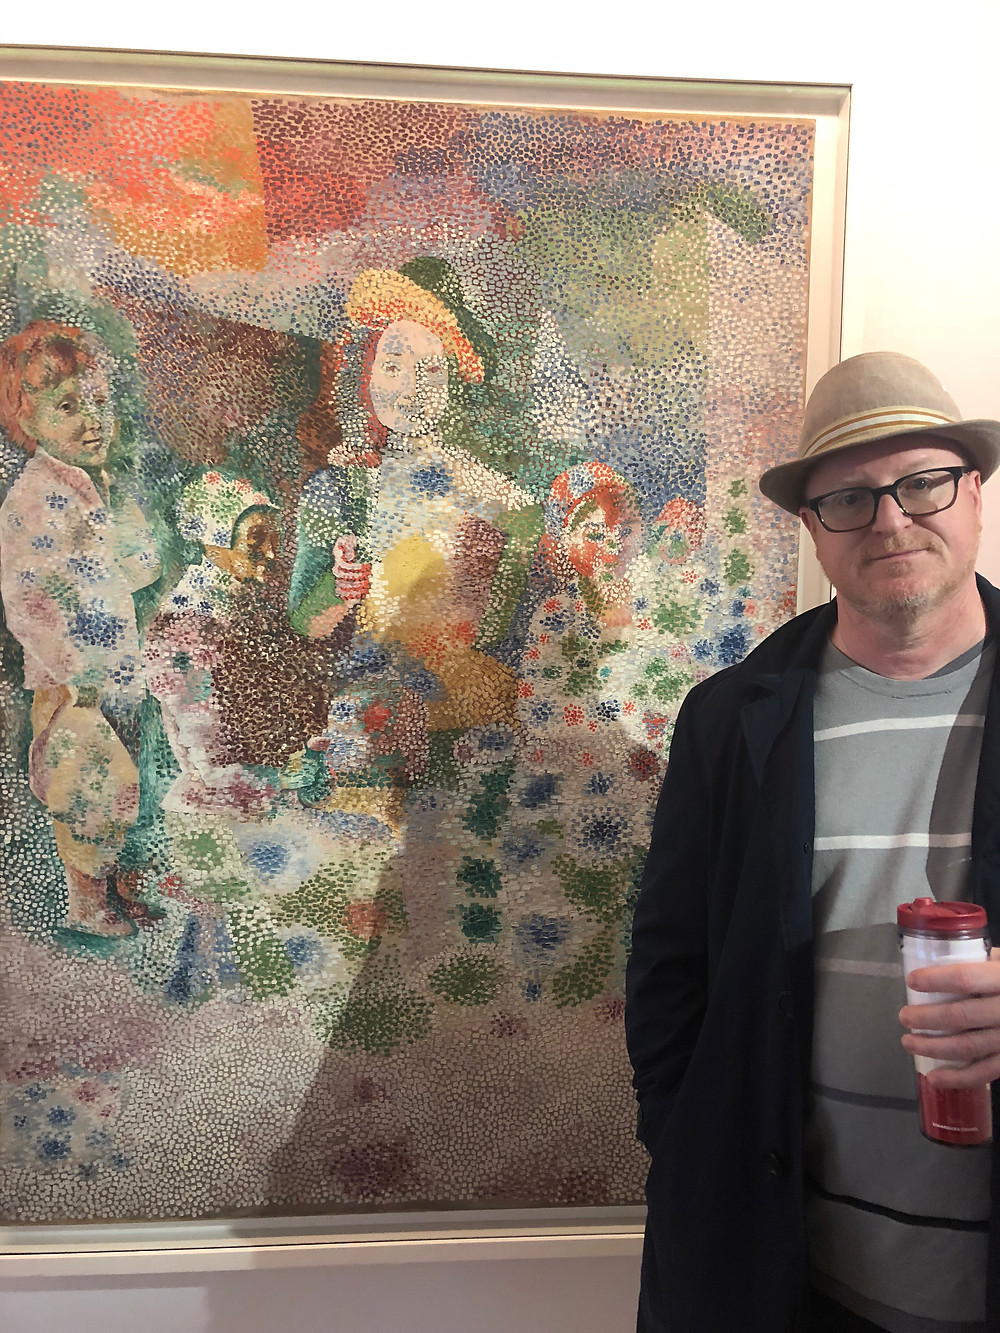 Mike poses with the cheerful pointillism painting